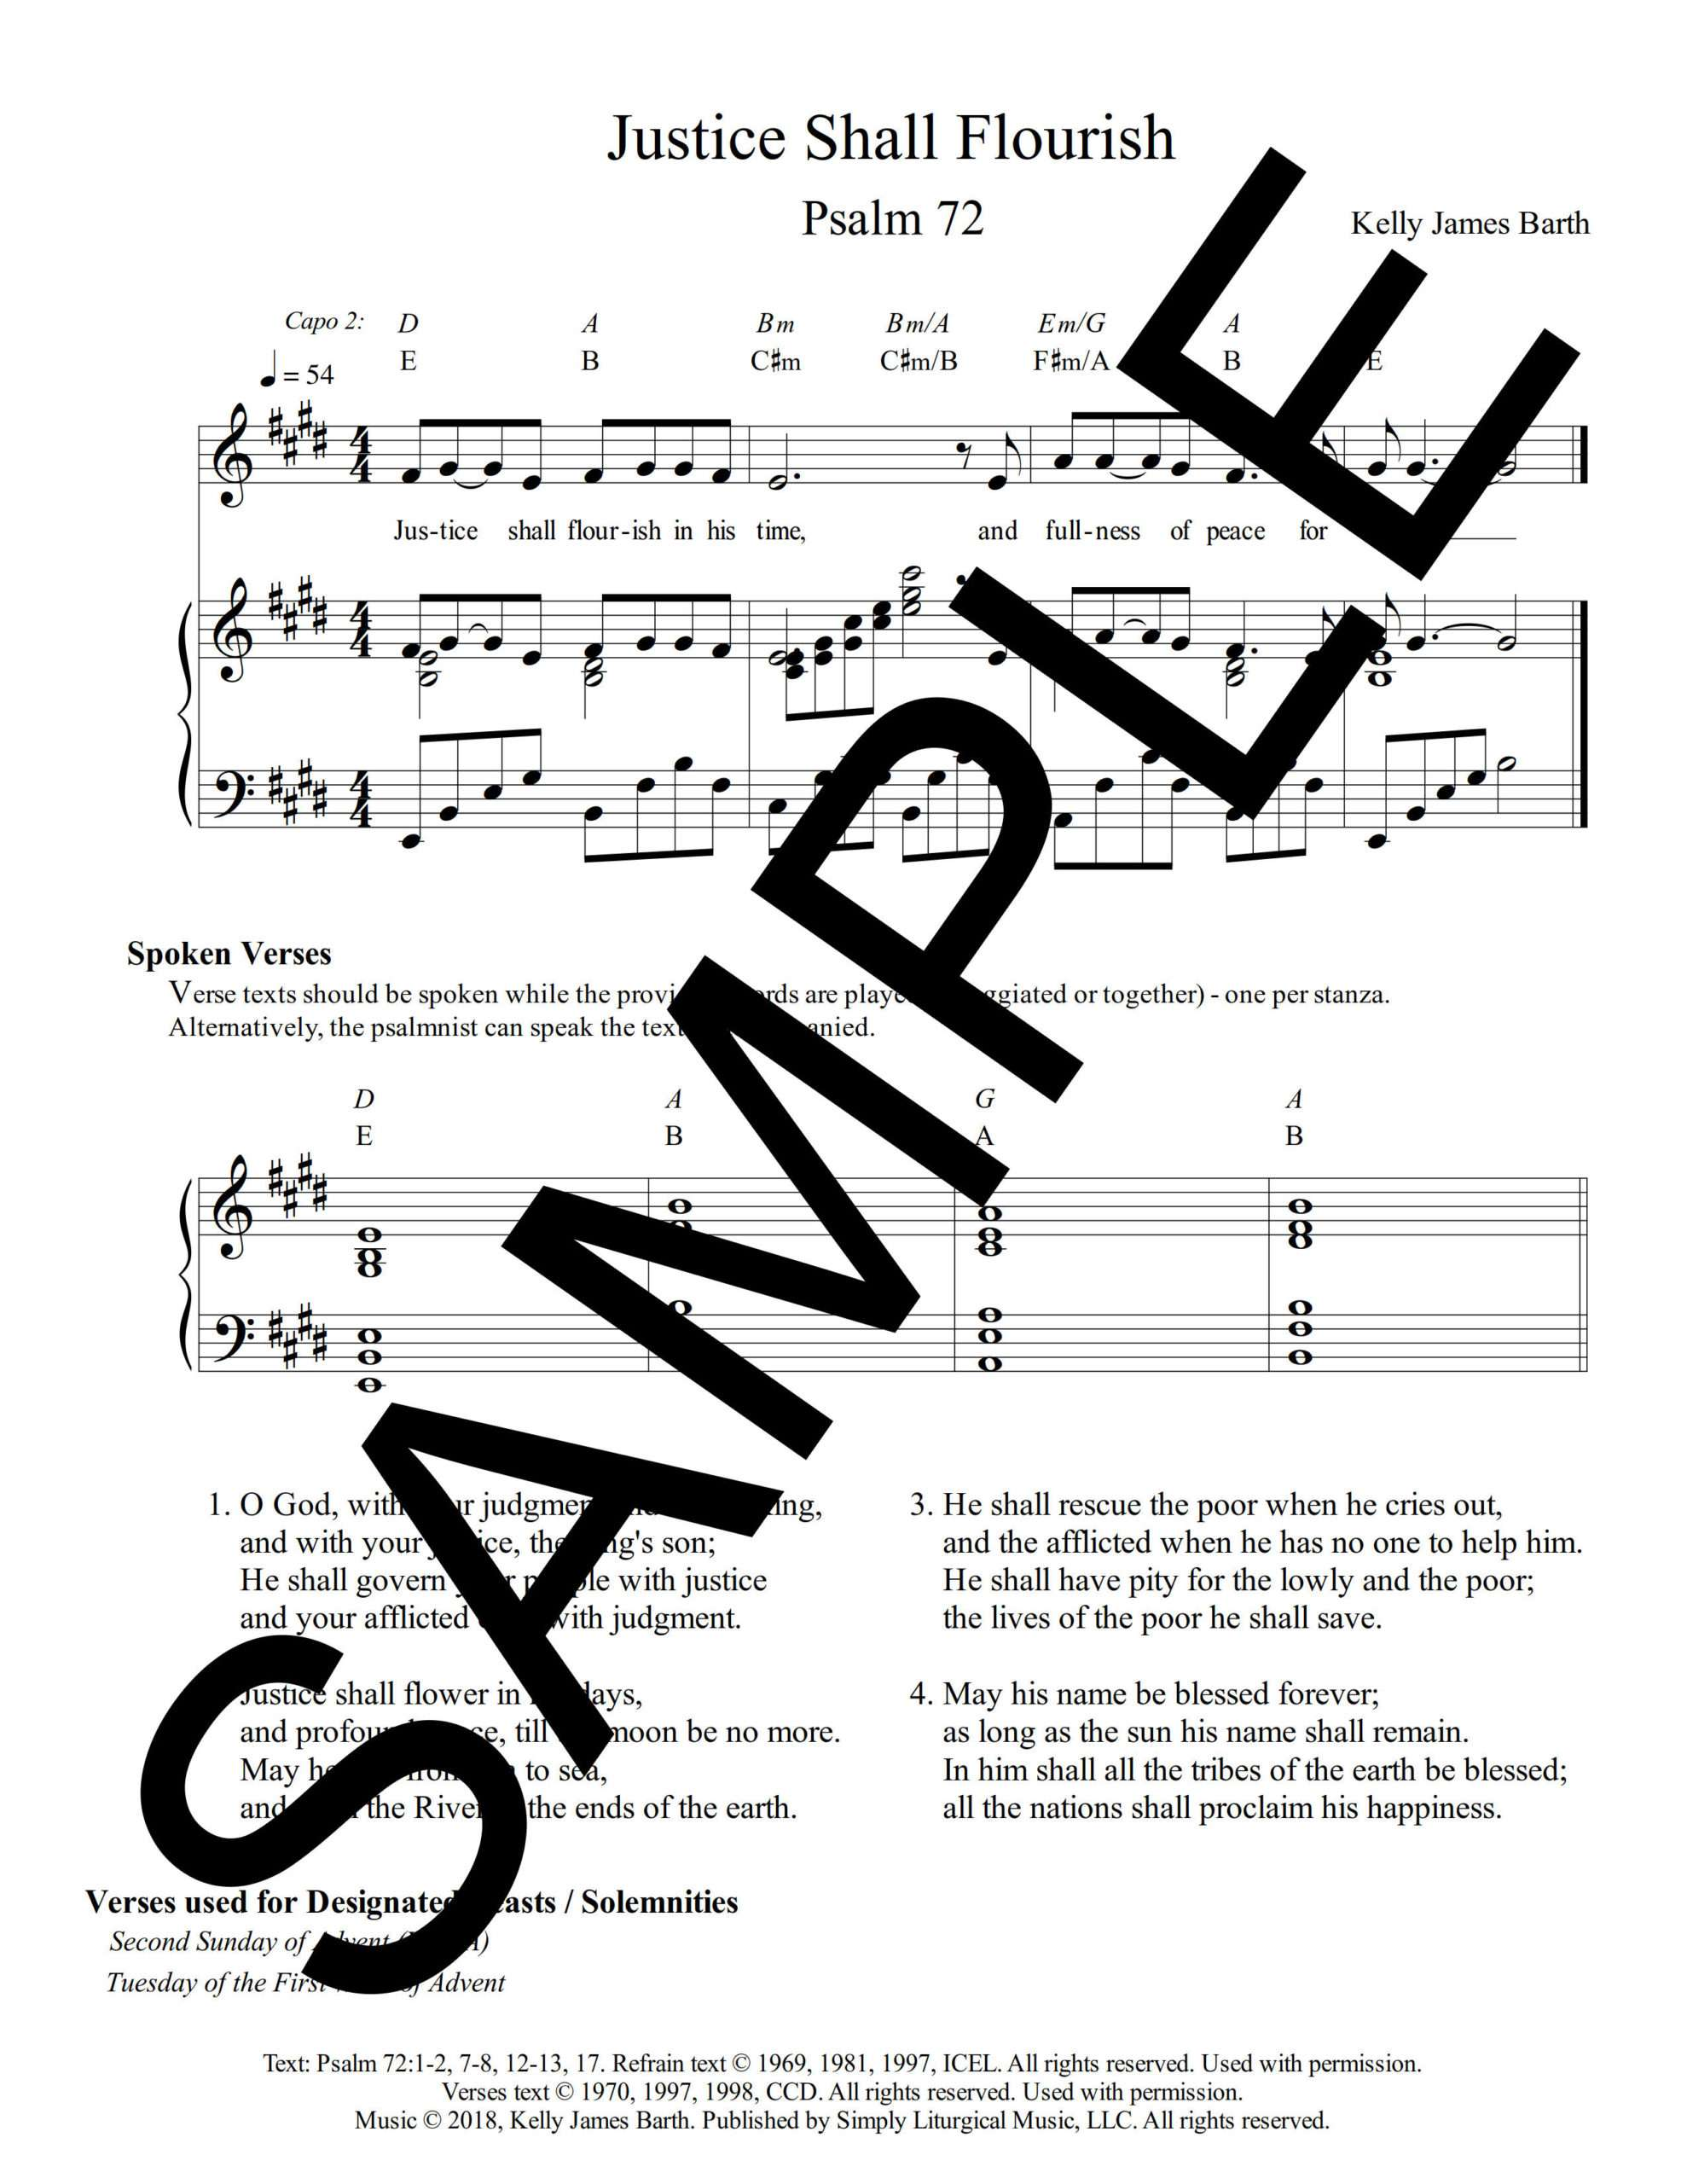 Psalm 72 Justice Shall Flourish Barth Sample Sheet Music 2 png